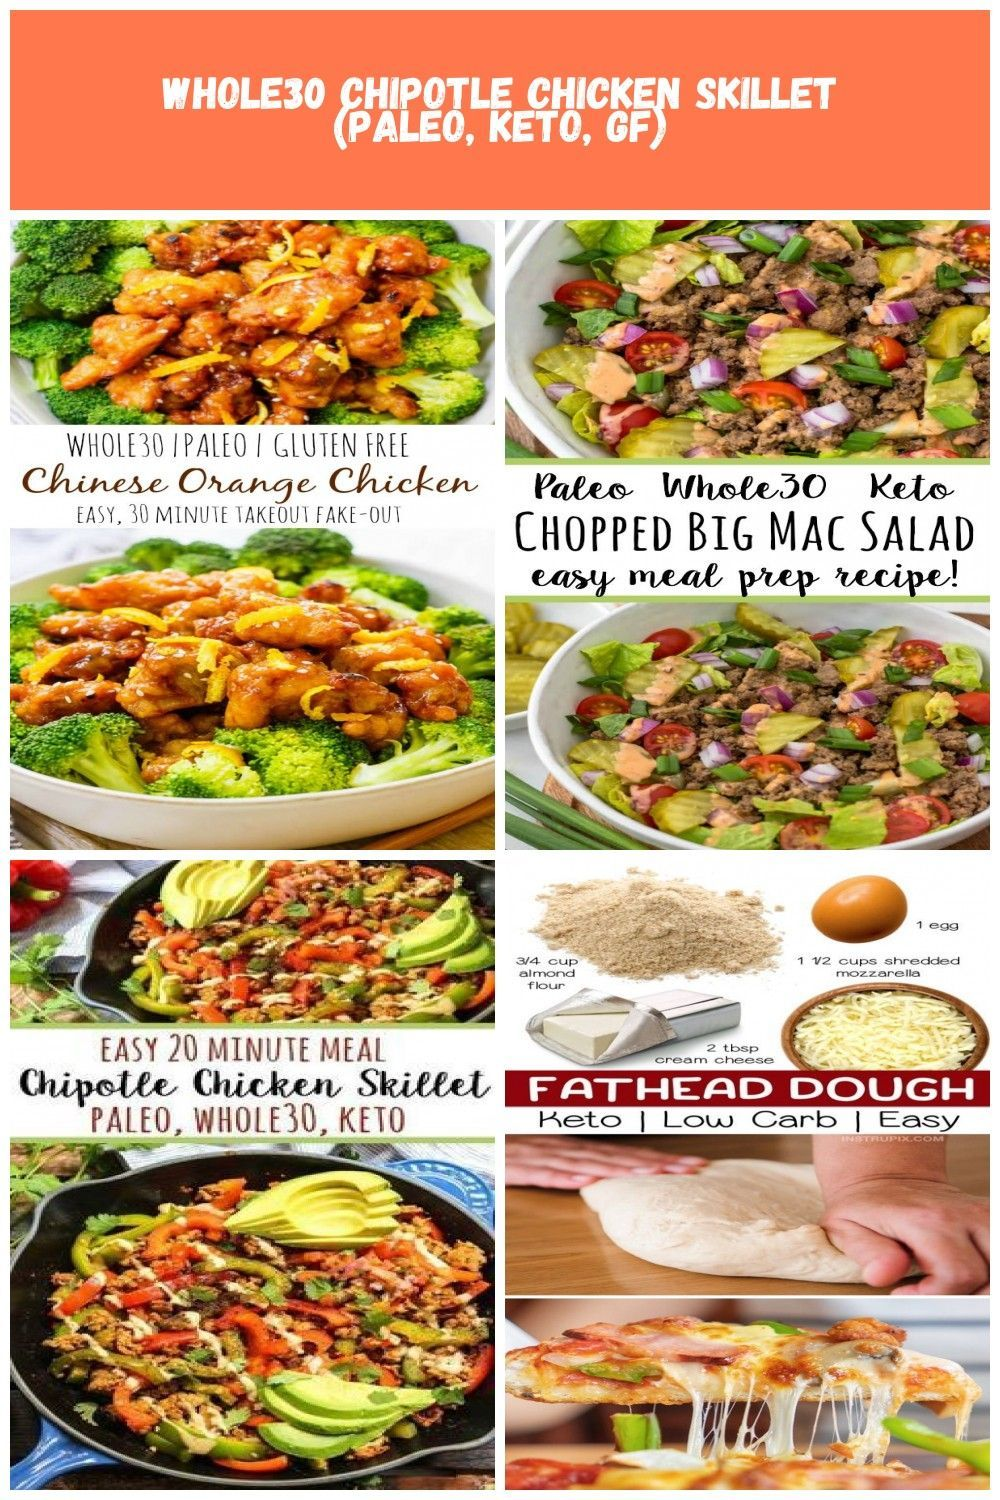 This easy Whole30 Chinese orange chicken is the best takeout fake-out ever. Sometimes you just need some orange chicken in your life, and this version is much healthier and there's no delivery fee! It's also a Paleo orange chicken recipe, which makes it gluten free and made from real ingredients, so you can skip the MSG! #whole30orangechicken #paleoorangechicken #whole30chickenrecipes paleo diet #chineseorangechicken This easy Whole30 Chinese orange chicken is the best takeout fake-out ever. Som #chineseorangechicken